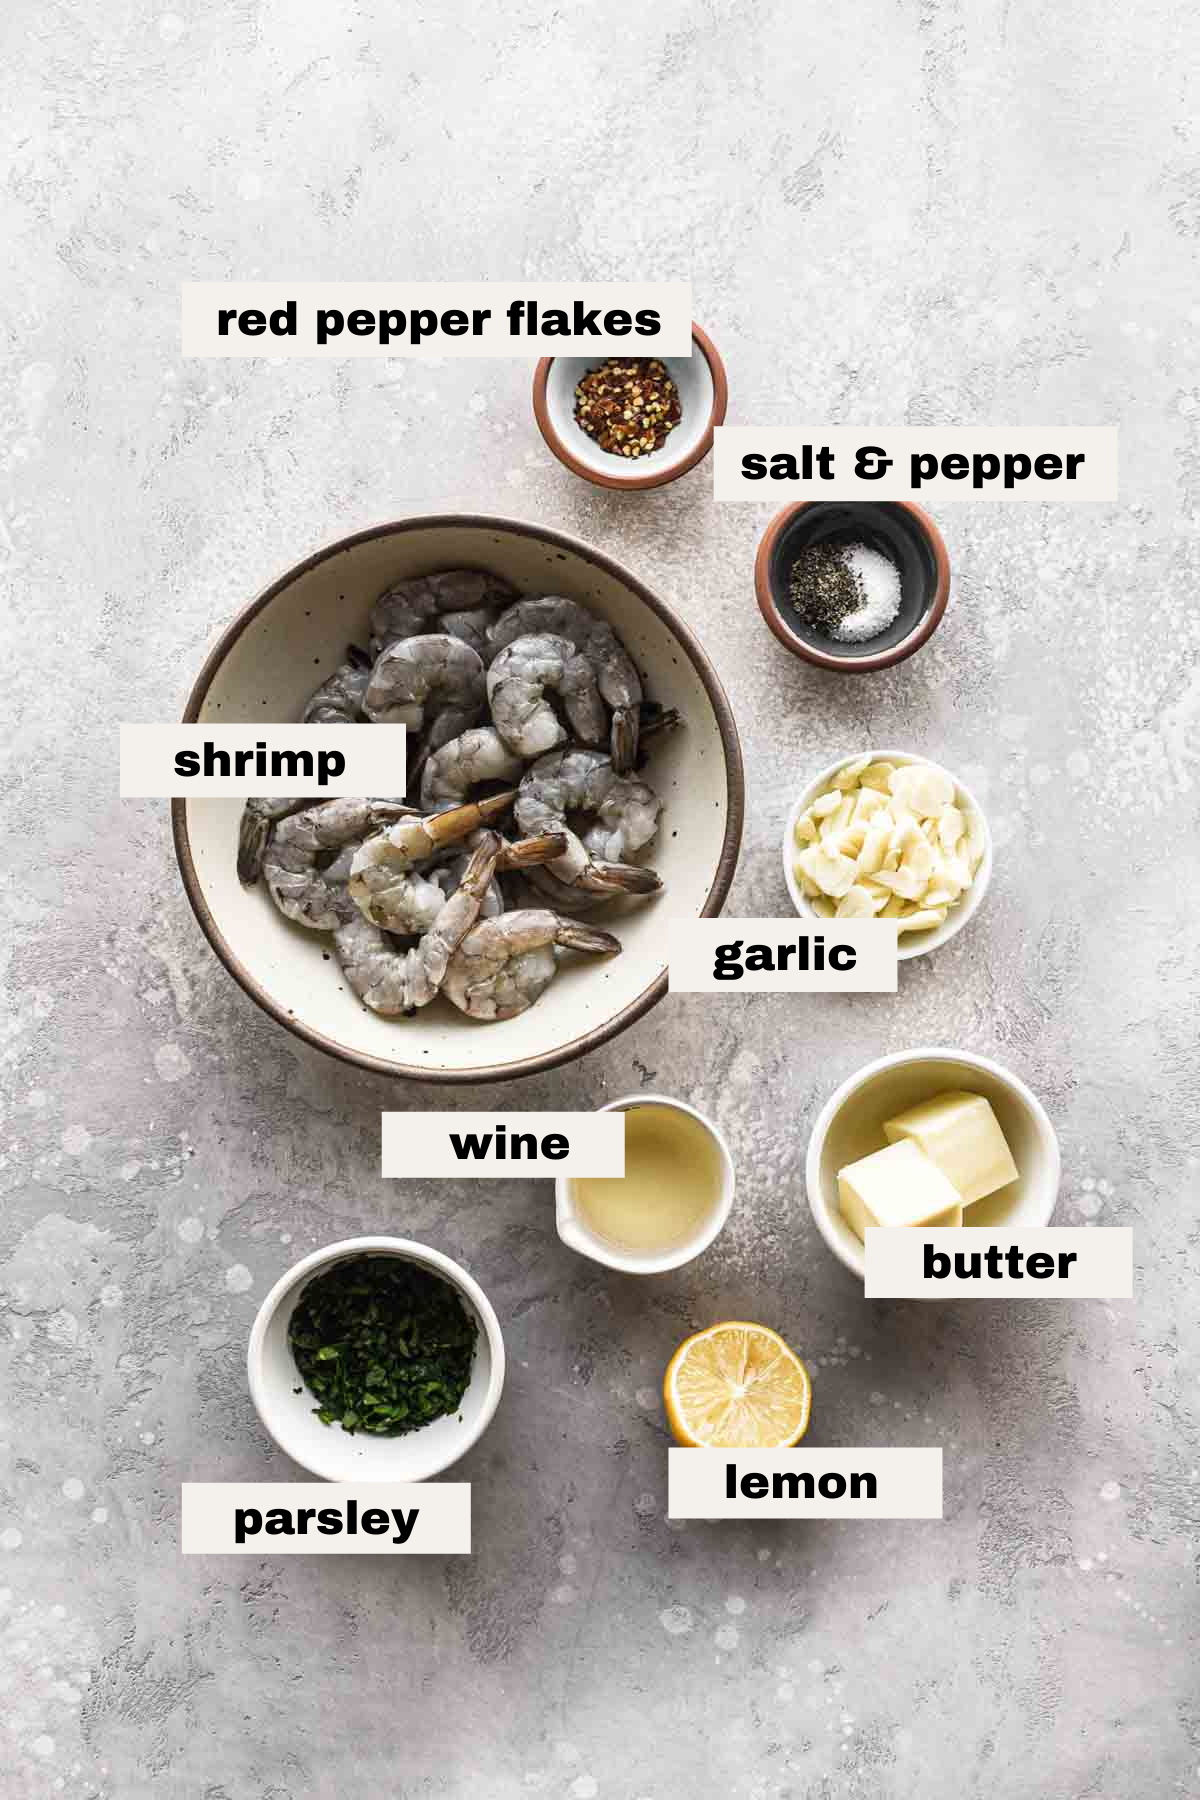 Ingredients laid out on a table with labels.